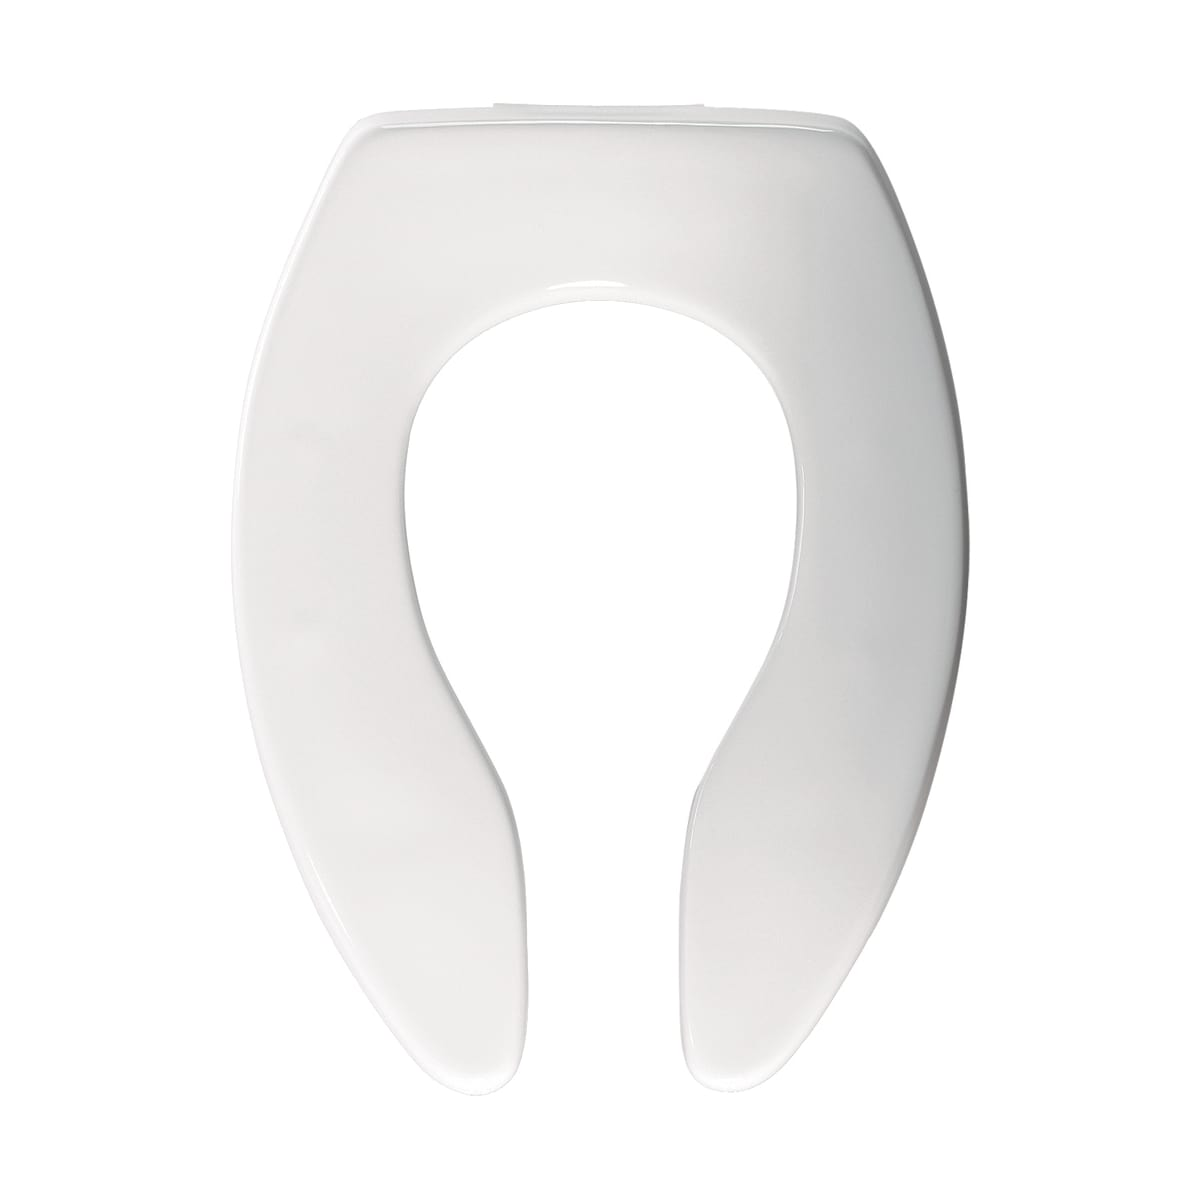 Bemis 3155CT 000 White Elongated Commercial Plastic Open Front Toilet Seat Less Cover with STA-TITE® Check Hinge and DuraGuard® - FaucetDirect.com